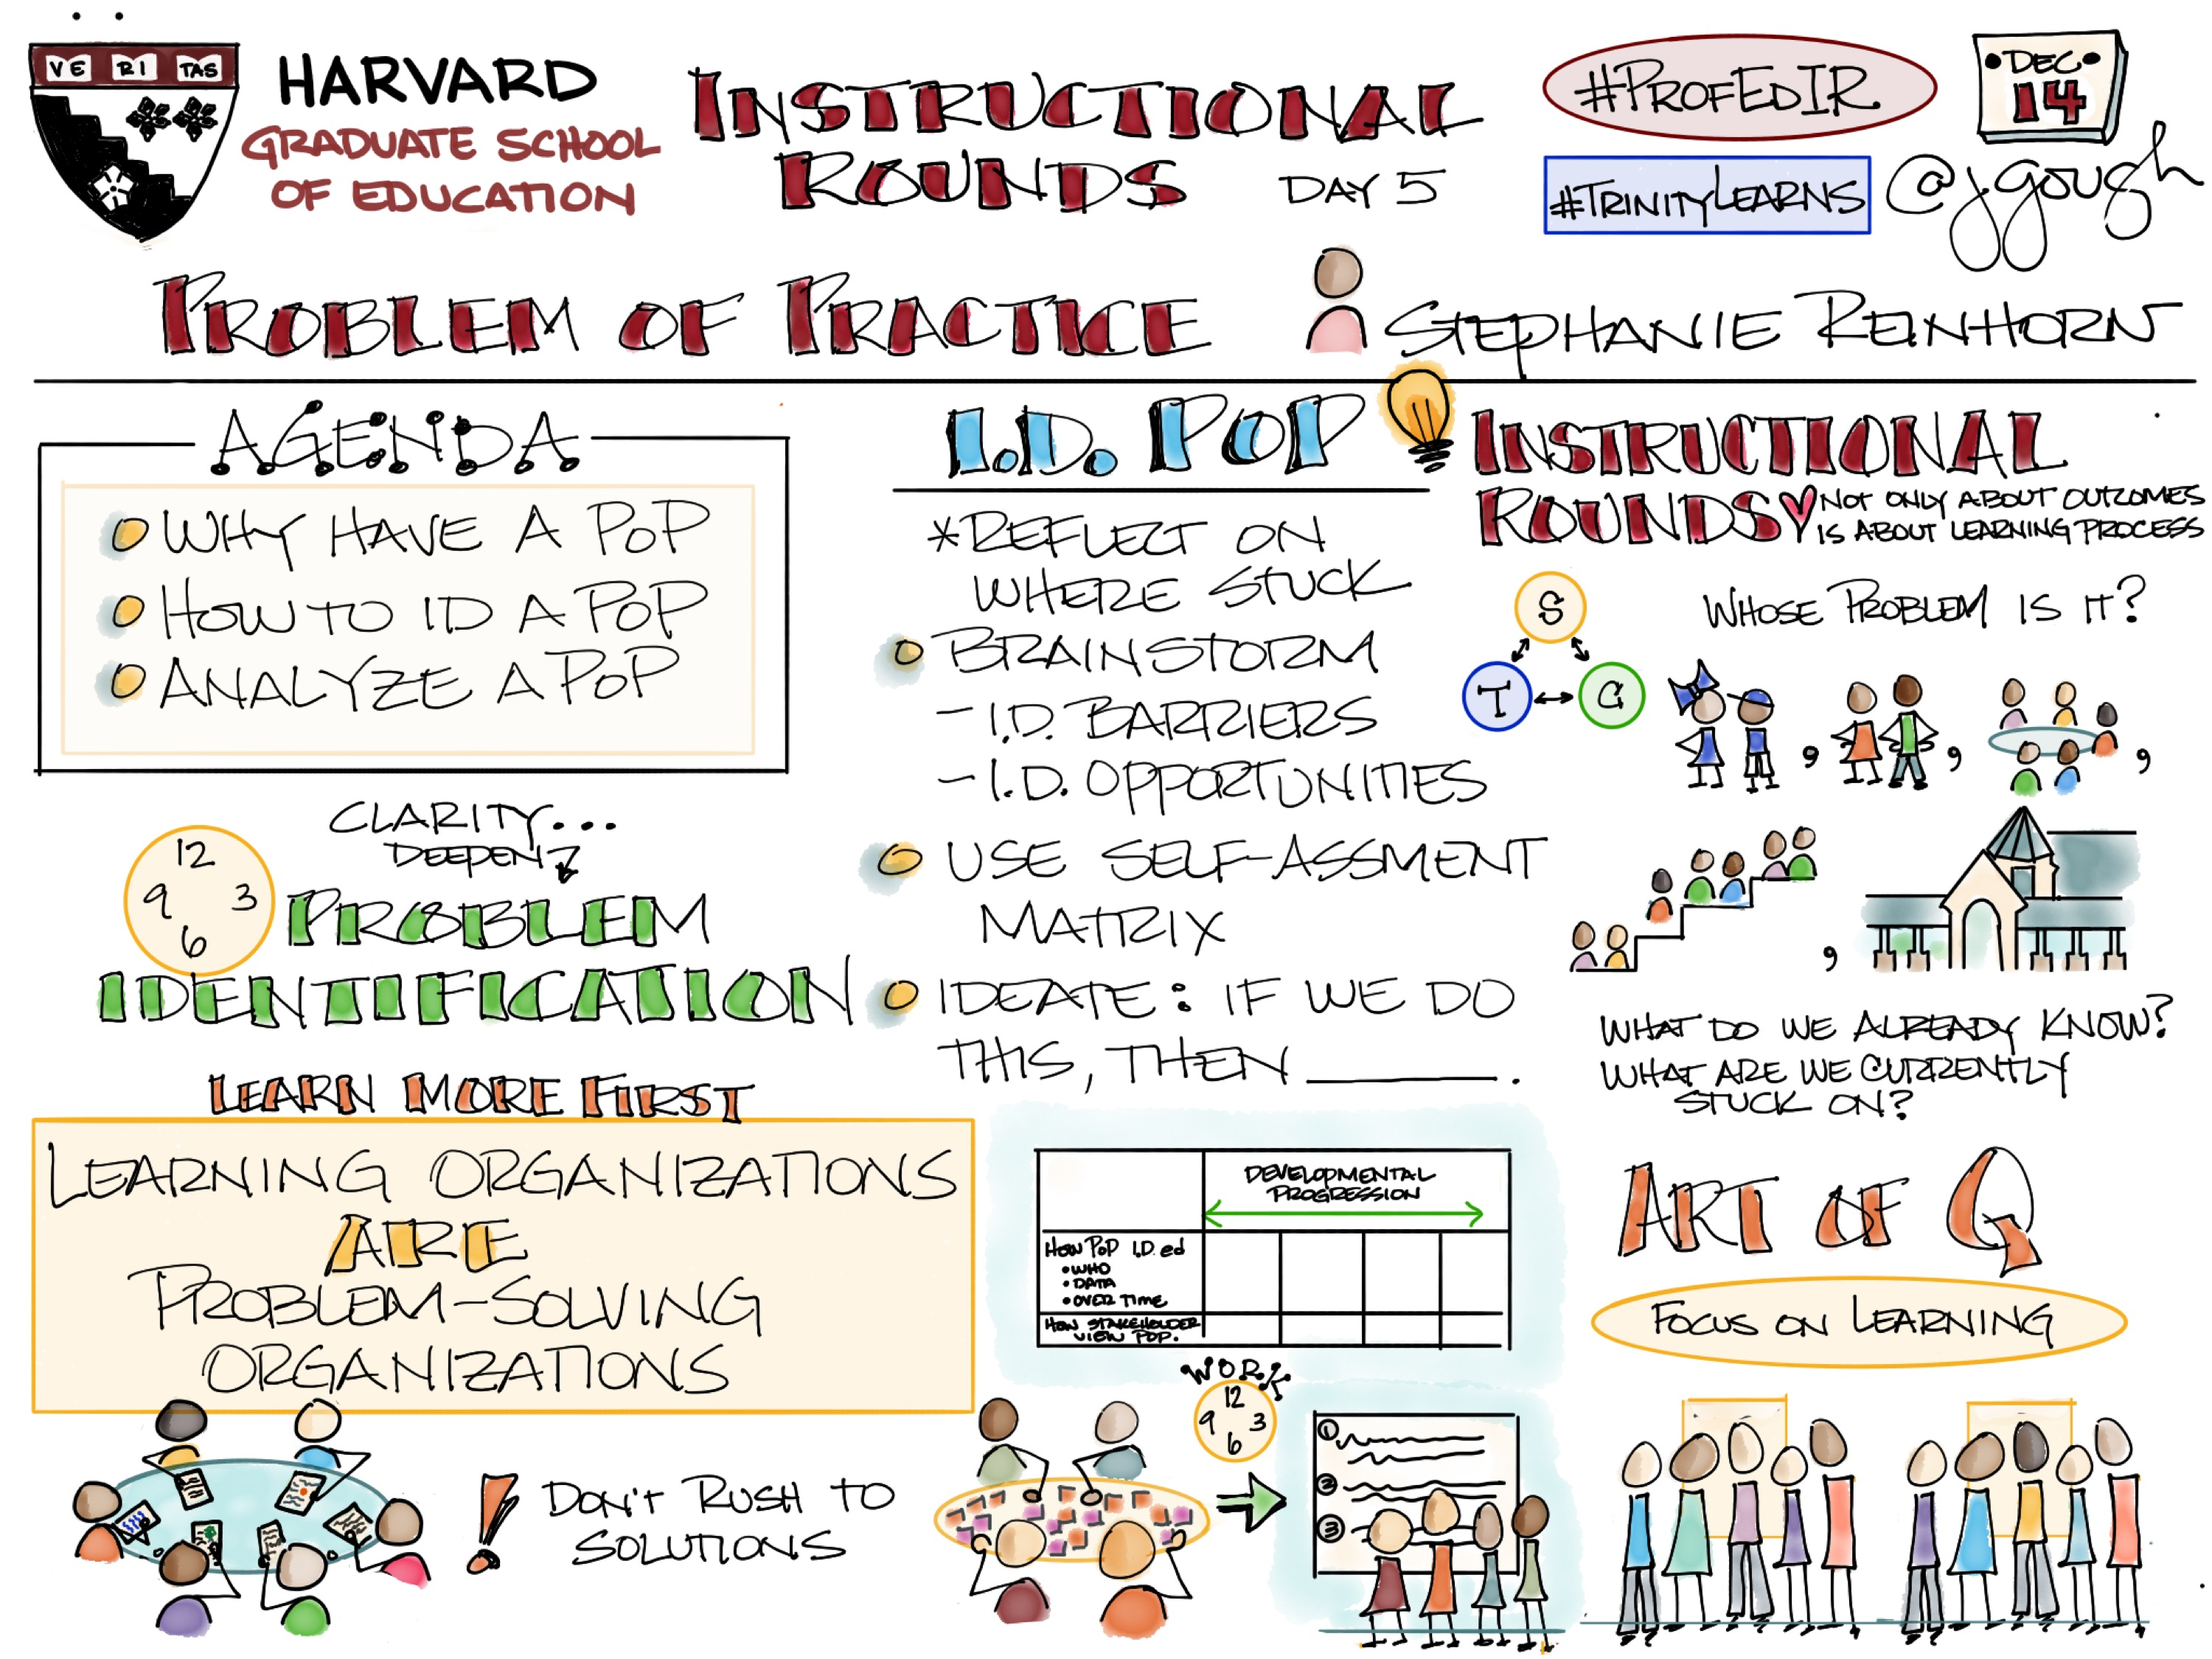 #ProfEdIR @HGSE Instructional Rounds Problem of Practice with Stephanie Reinhorn – #TrinityLearns